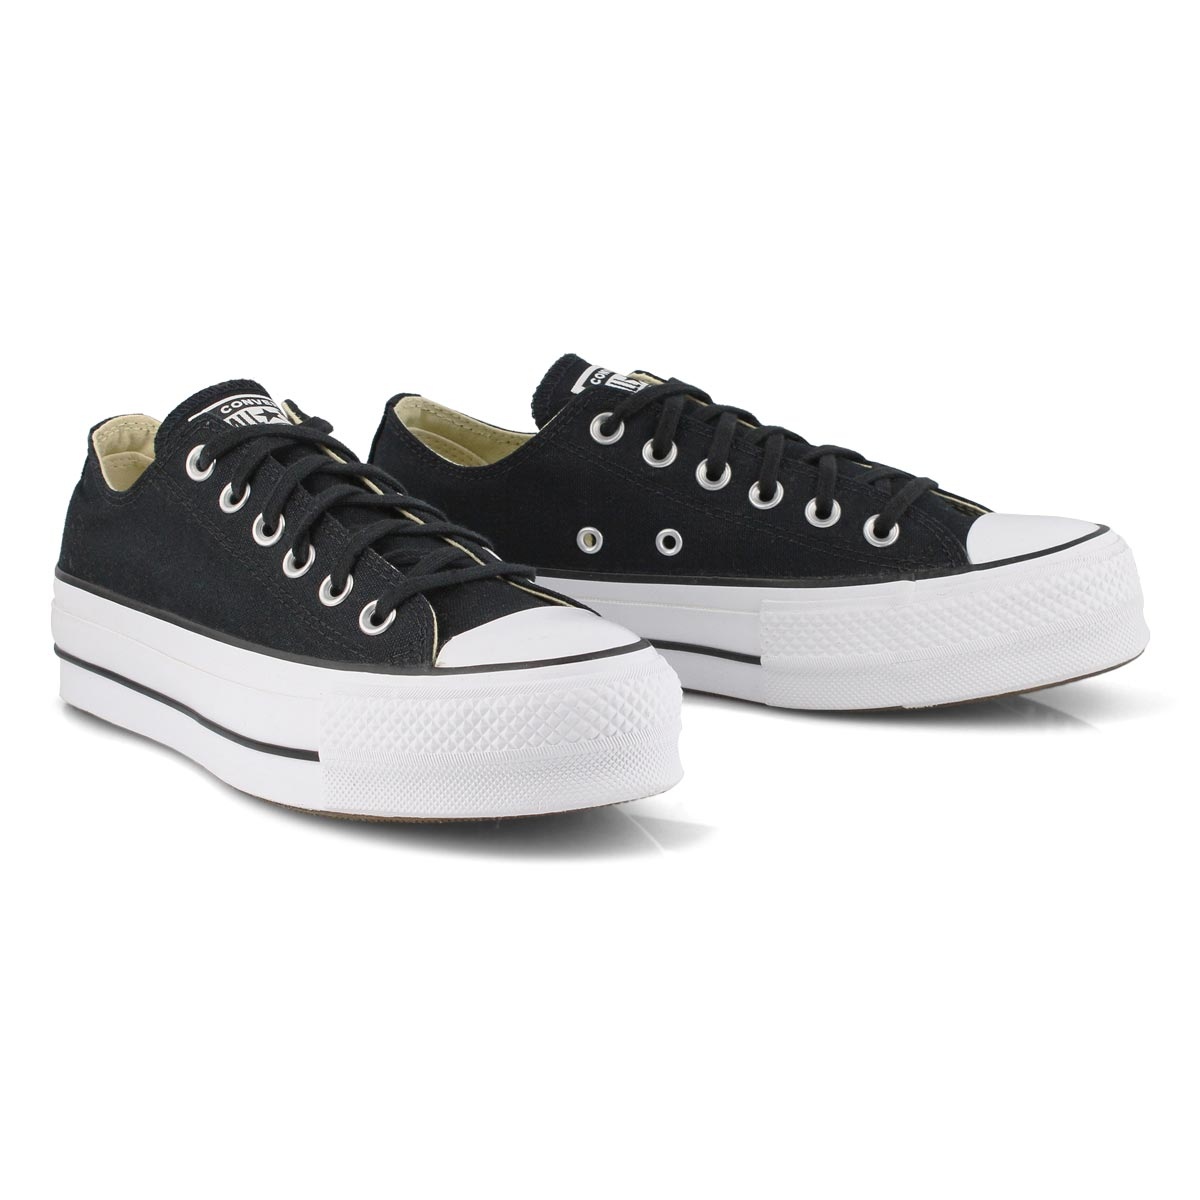 Lds CT AS Lift blk/wht platform sneaker